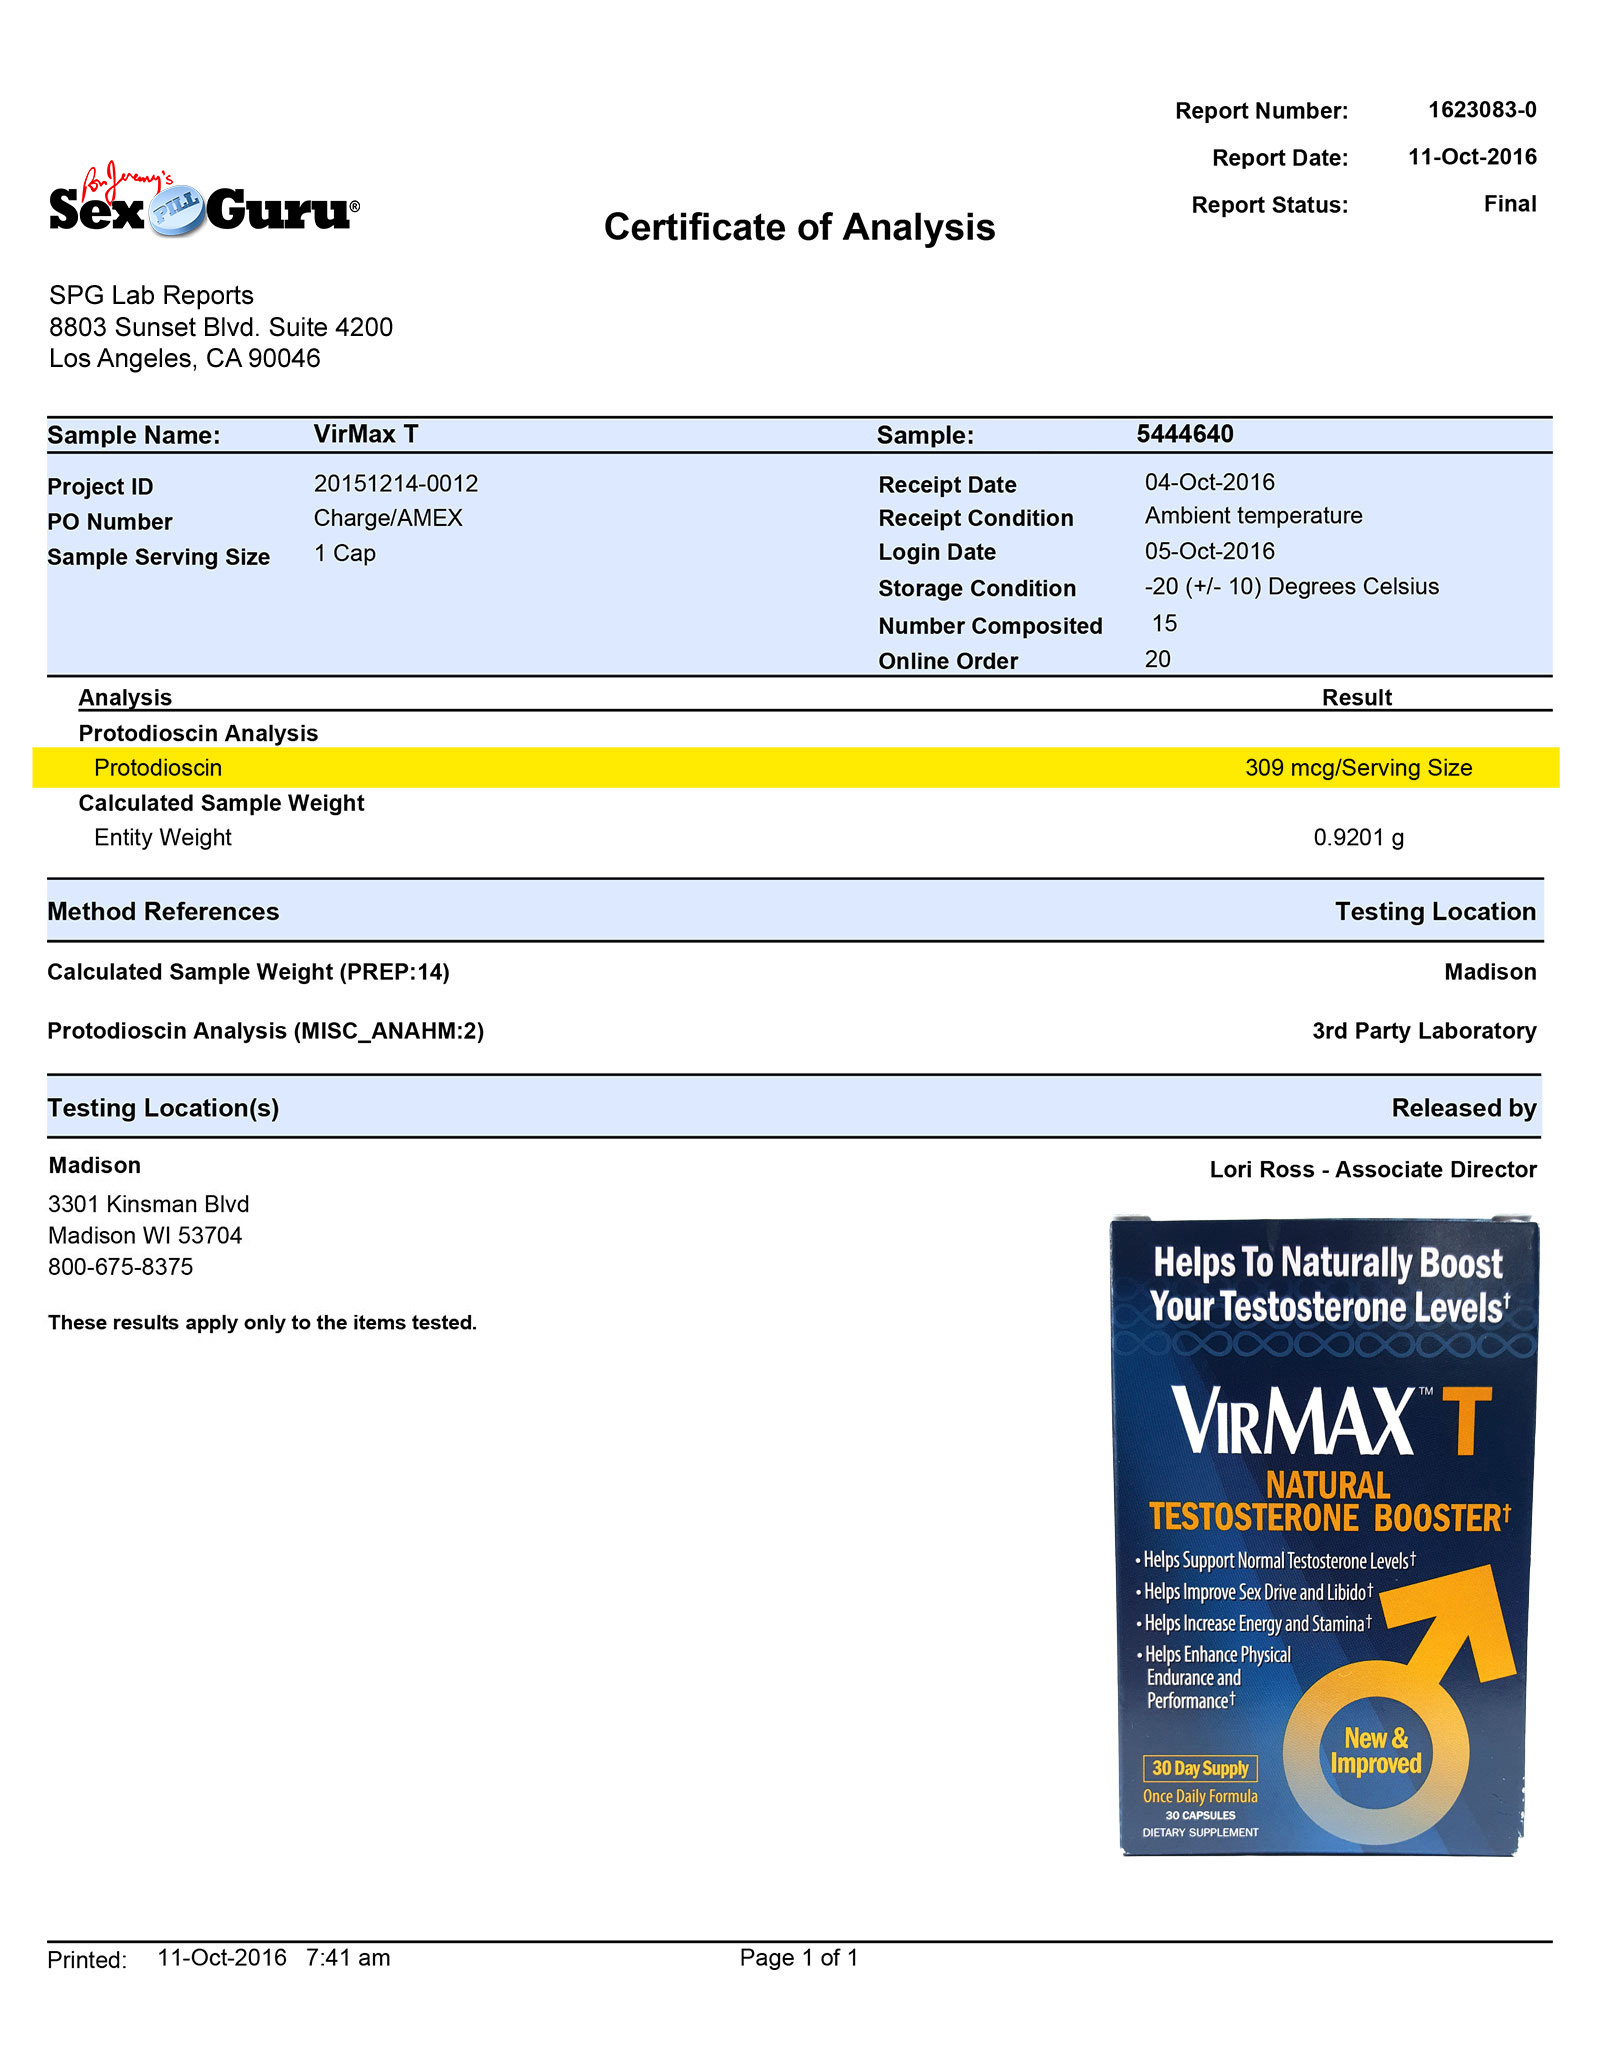 Lab Report - Virmax